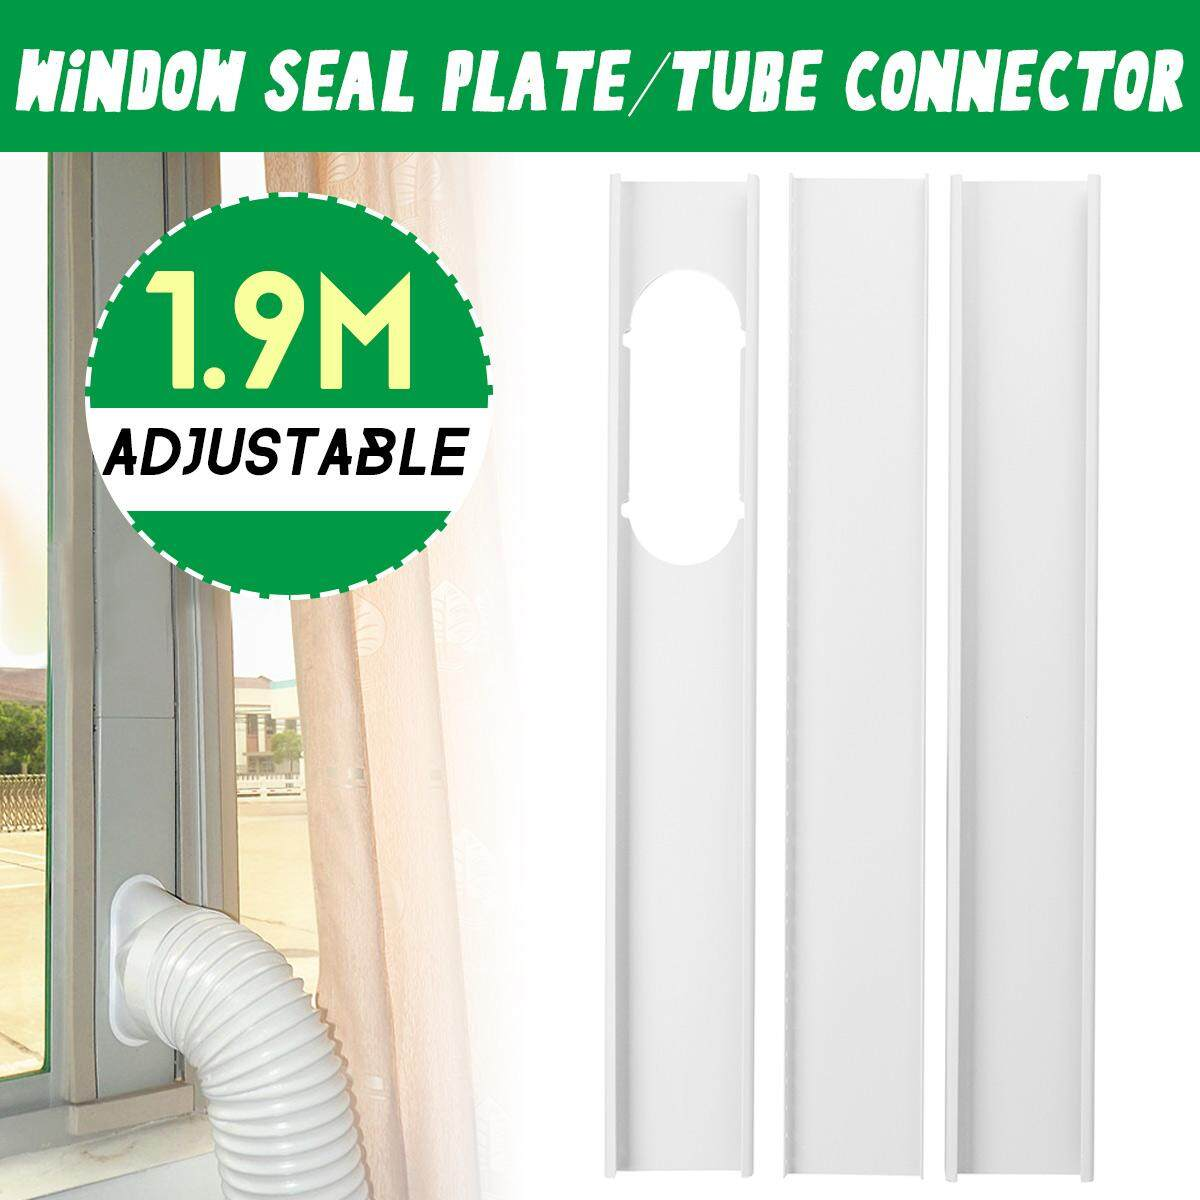 Plastic Door Curtains For Air Conditioner 3x 1 9m Window Plate Exhaust Hose Tube Connector Fit Portable Air Conditioner